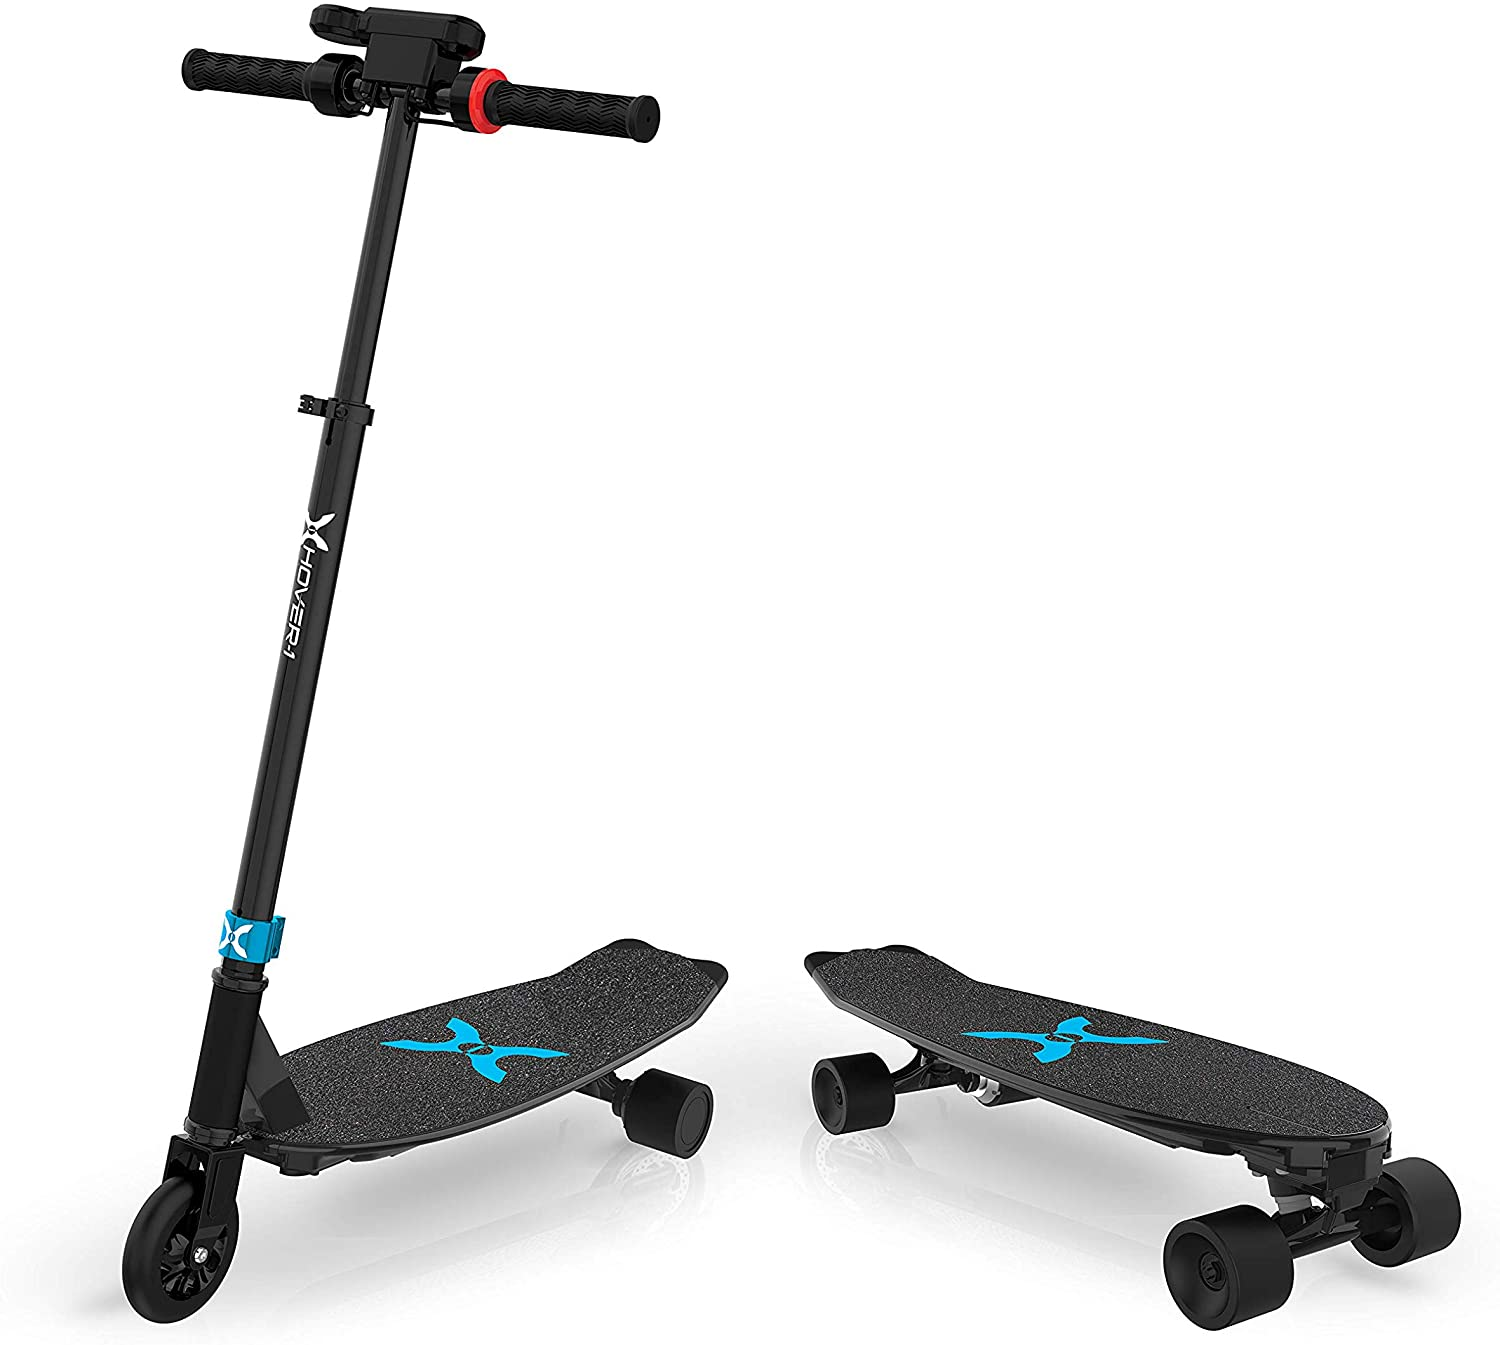 2-in-1 Electric Skateboard and Scooter for Kids